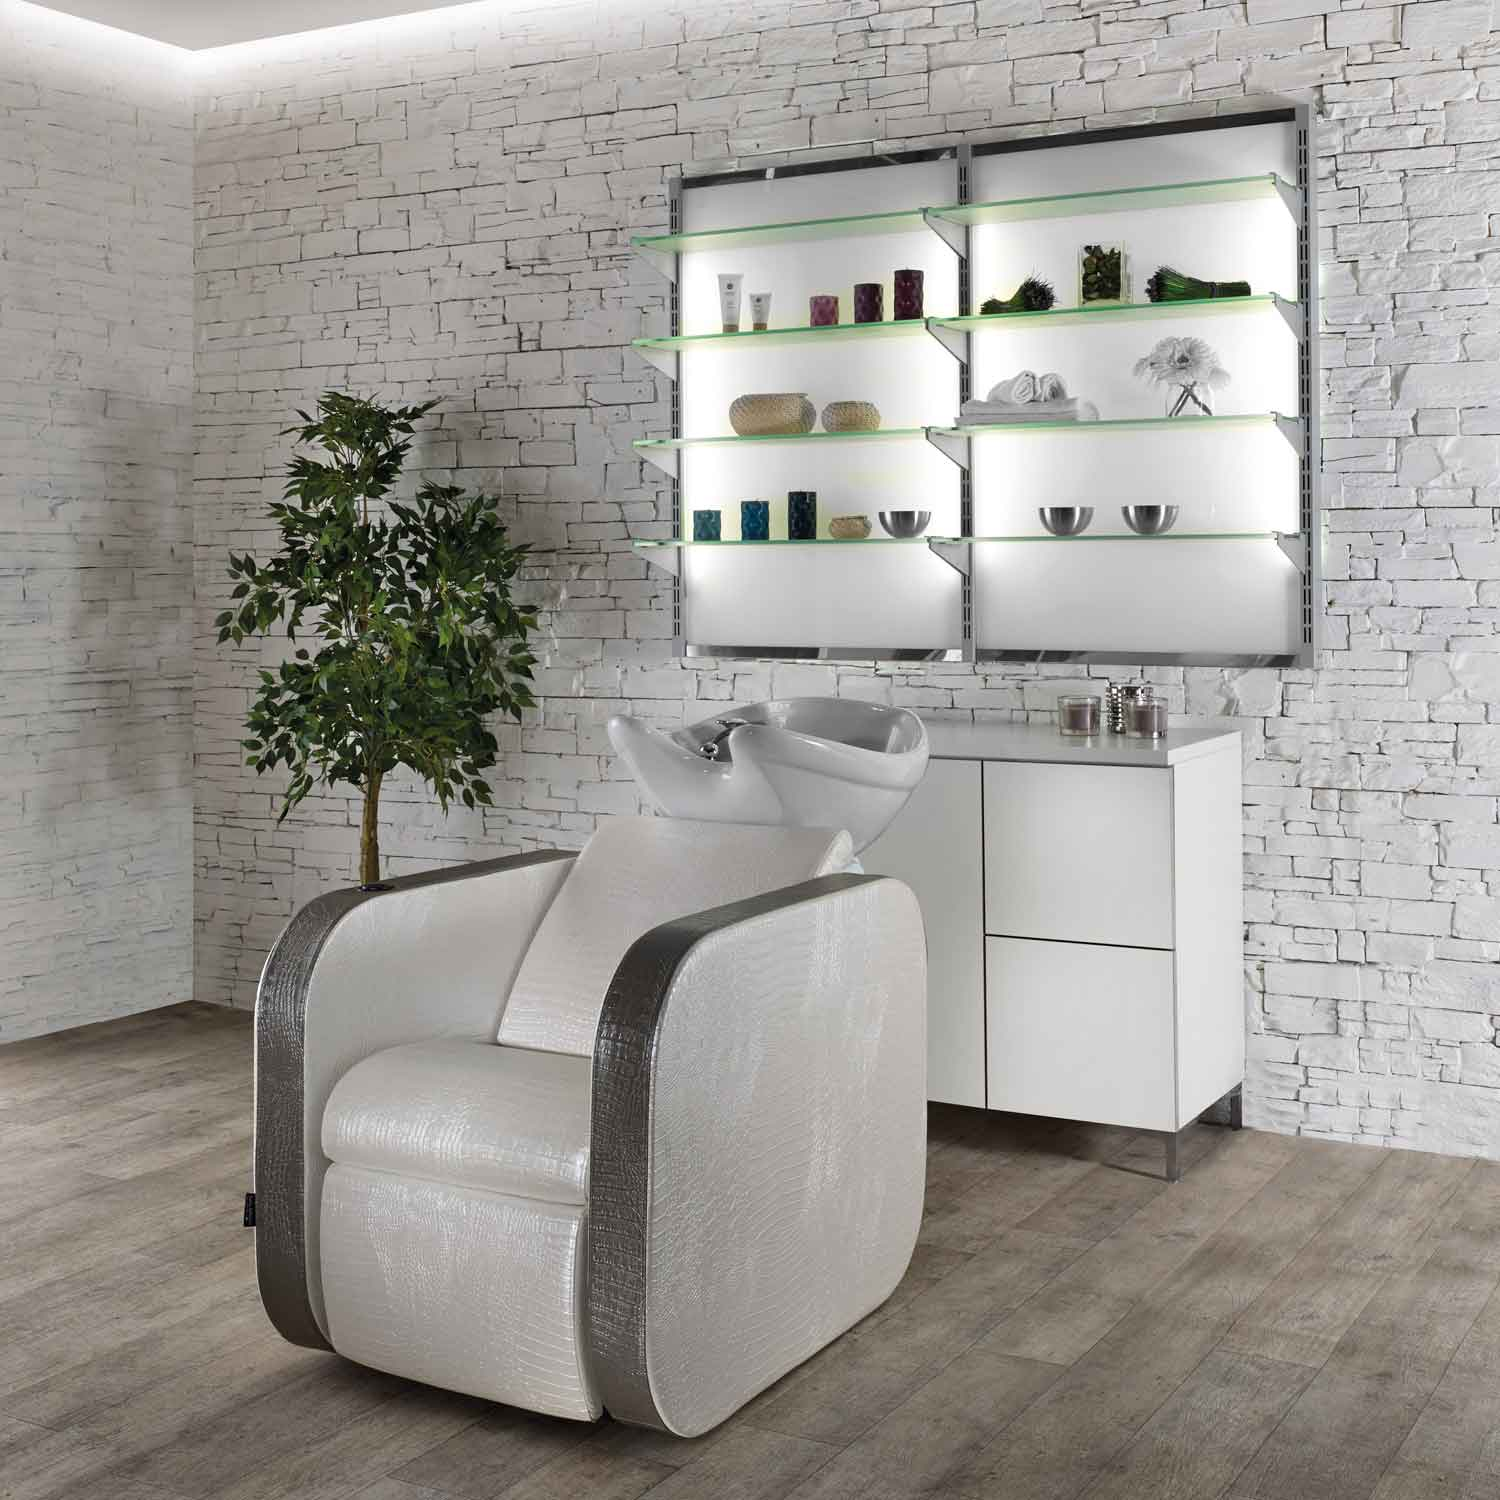 Double Icon Shampoo Station with 2 Chairs by Salon Ambience alternative product image 4